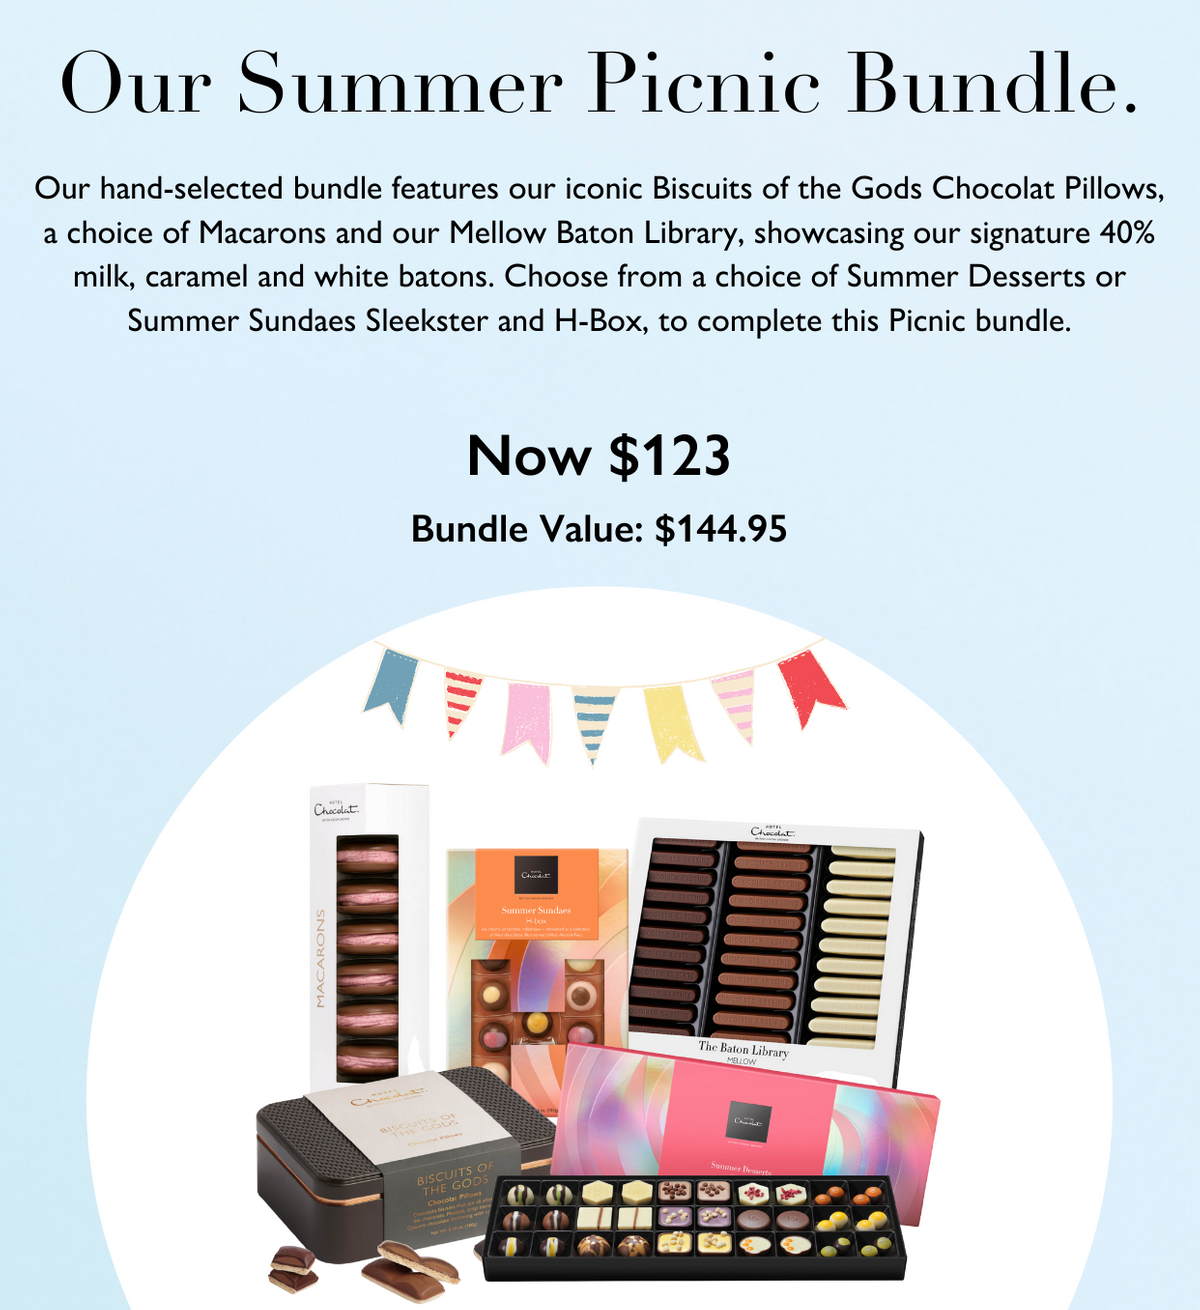 Nothing says summer better than a picnic. Our hand selected bundle features our iconic Biscuits of the Gods Chocolat Pillows, a choice of macarons and our mellow baton library, showcasing our signature 40% milk, caramel, and white batons. Our summer collection also features, with a choice of summer desserts, or summer sundaes Sleeksters and H-Boxes, this bundle is sure to make your picnic unforgettable ,